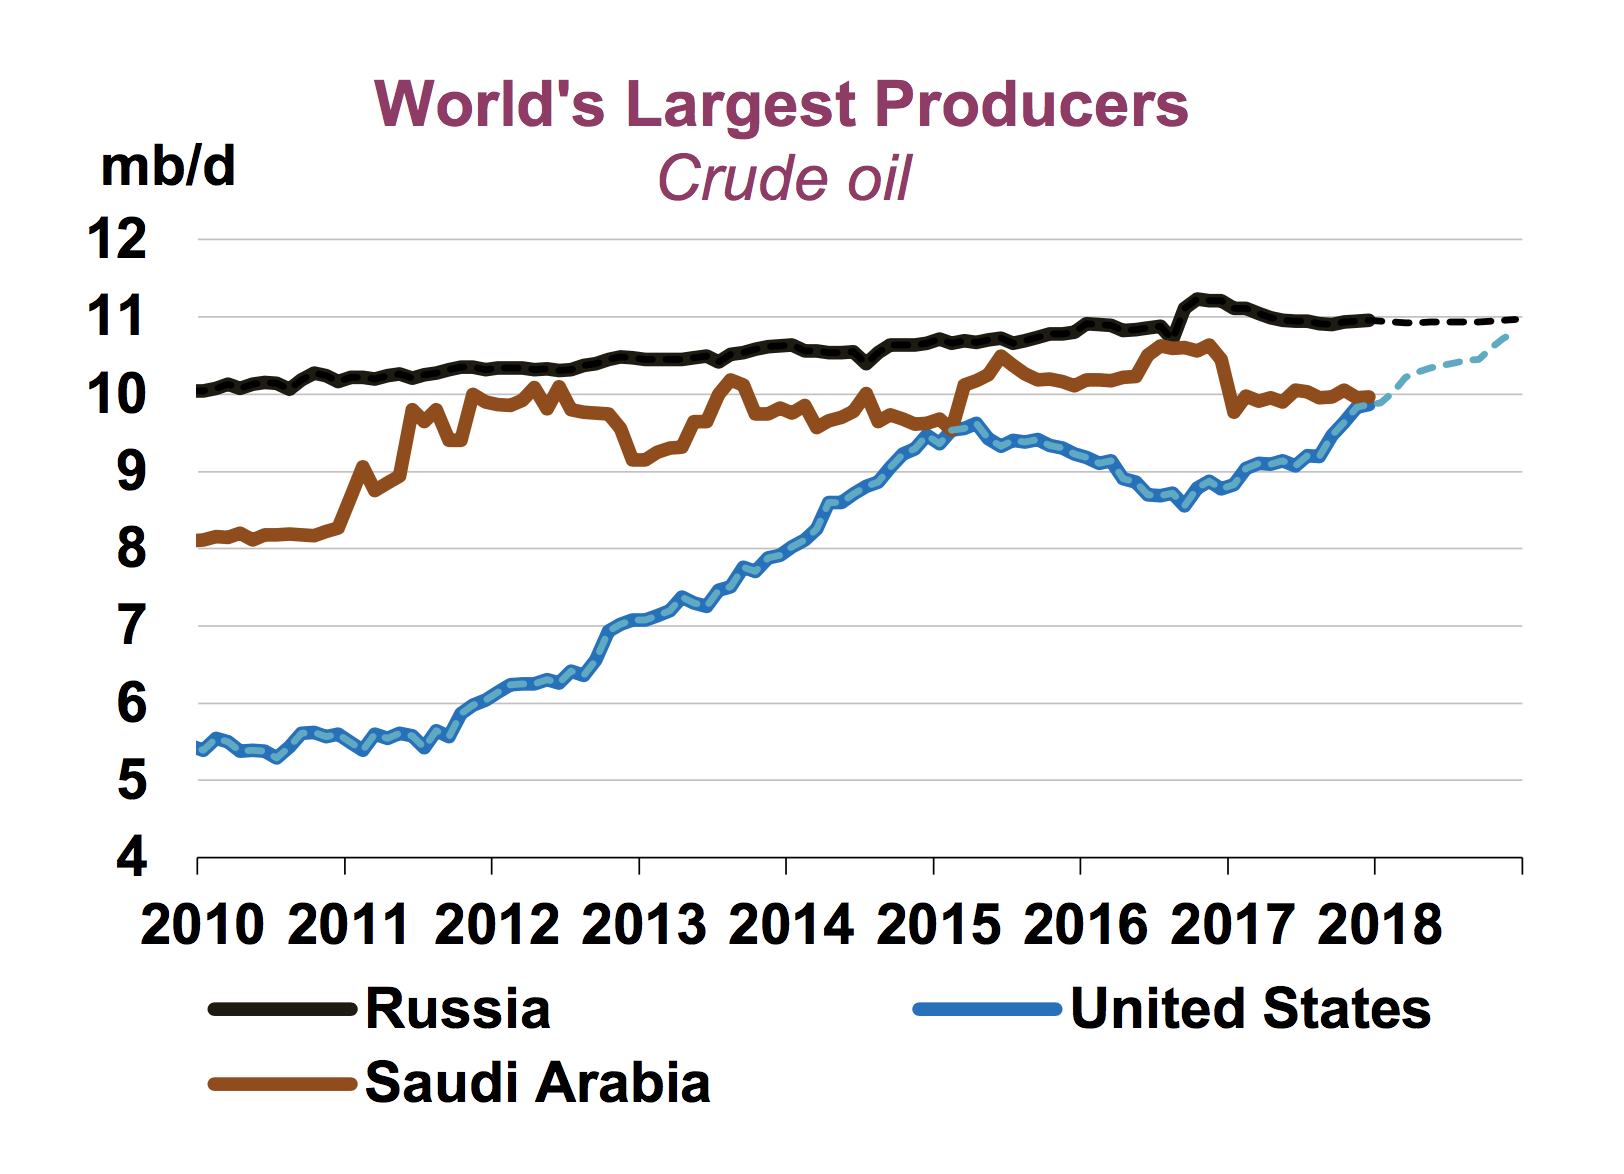 IEA chart on world's largest producers. U.S. is rising fast